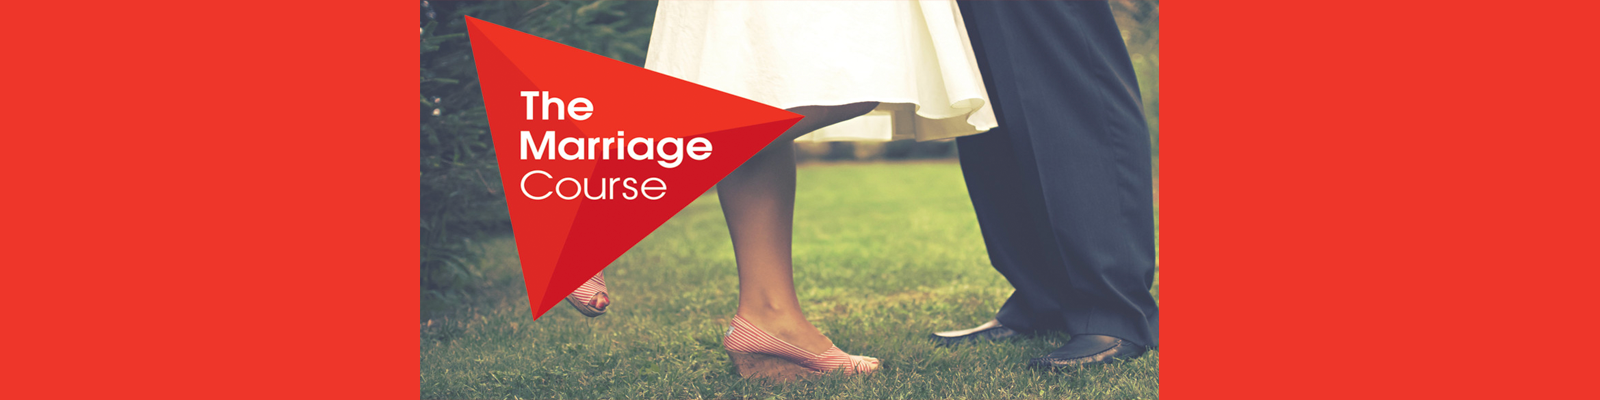 The Marriage Course by Alpha